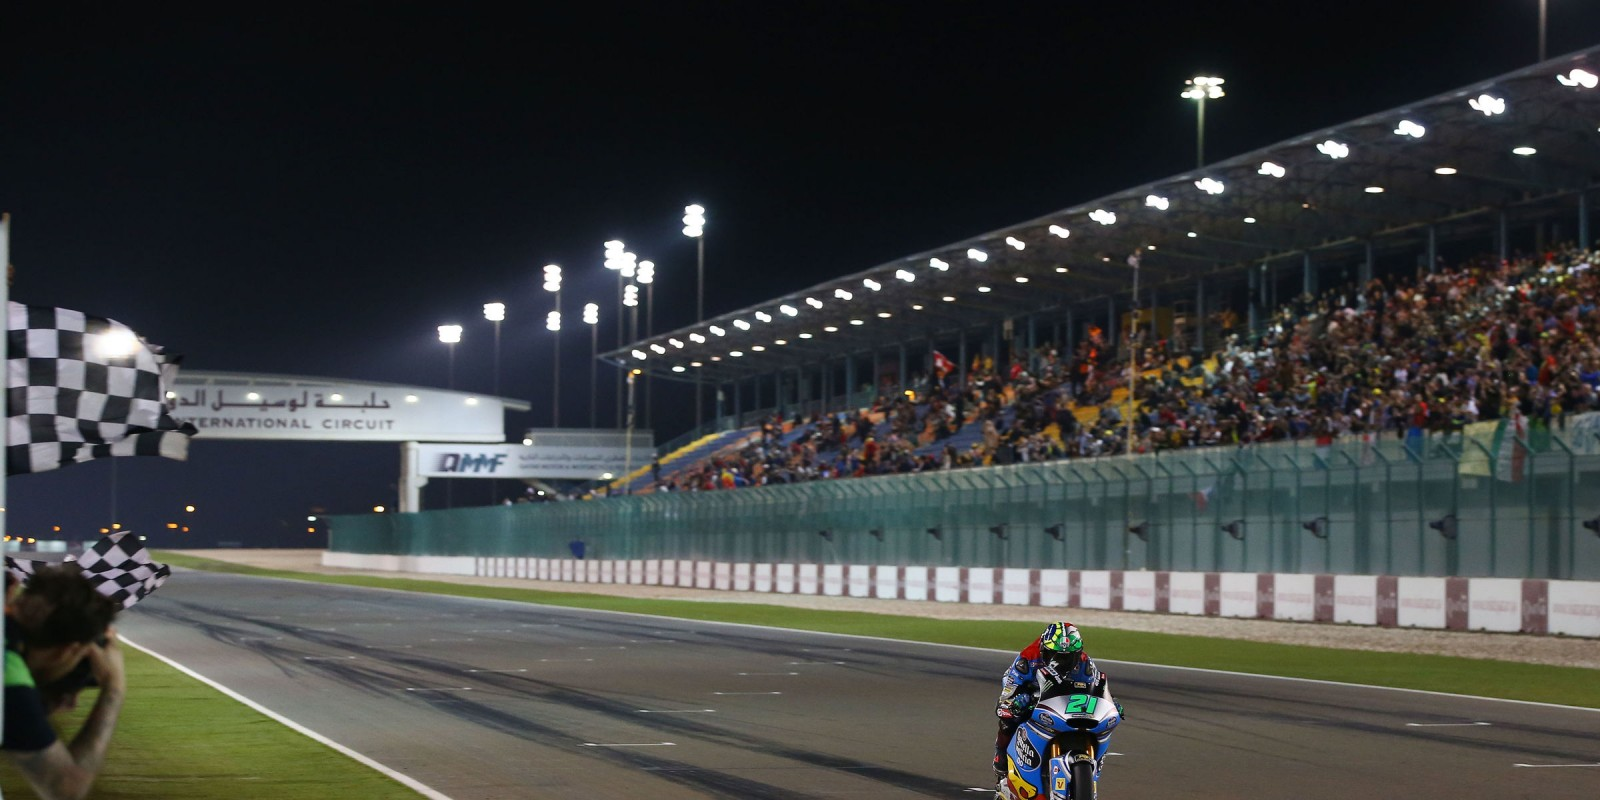 Monster riders at the 2017 Grand Prix of Qatar